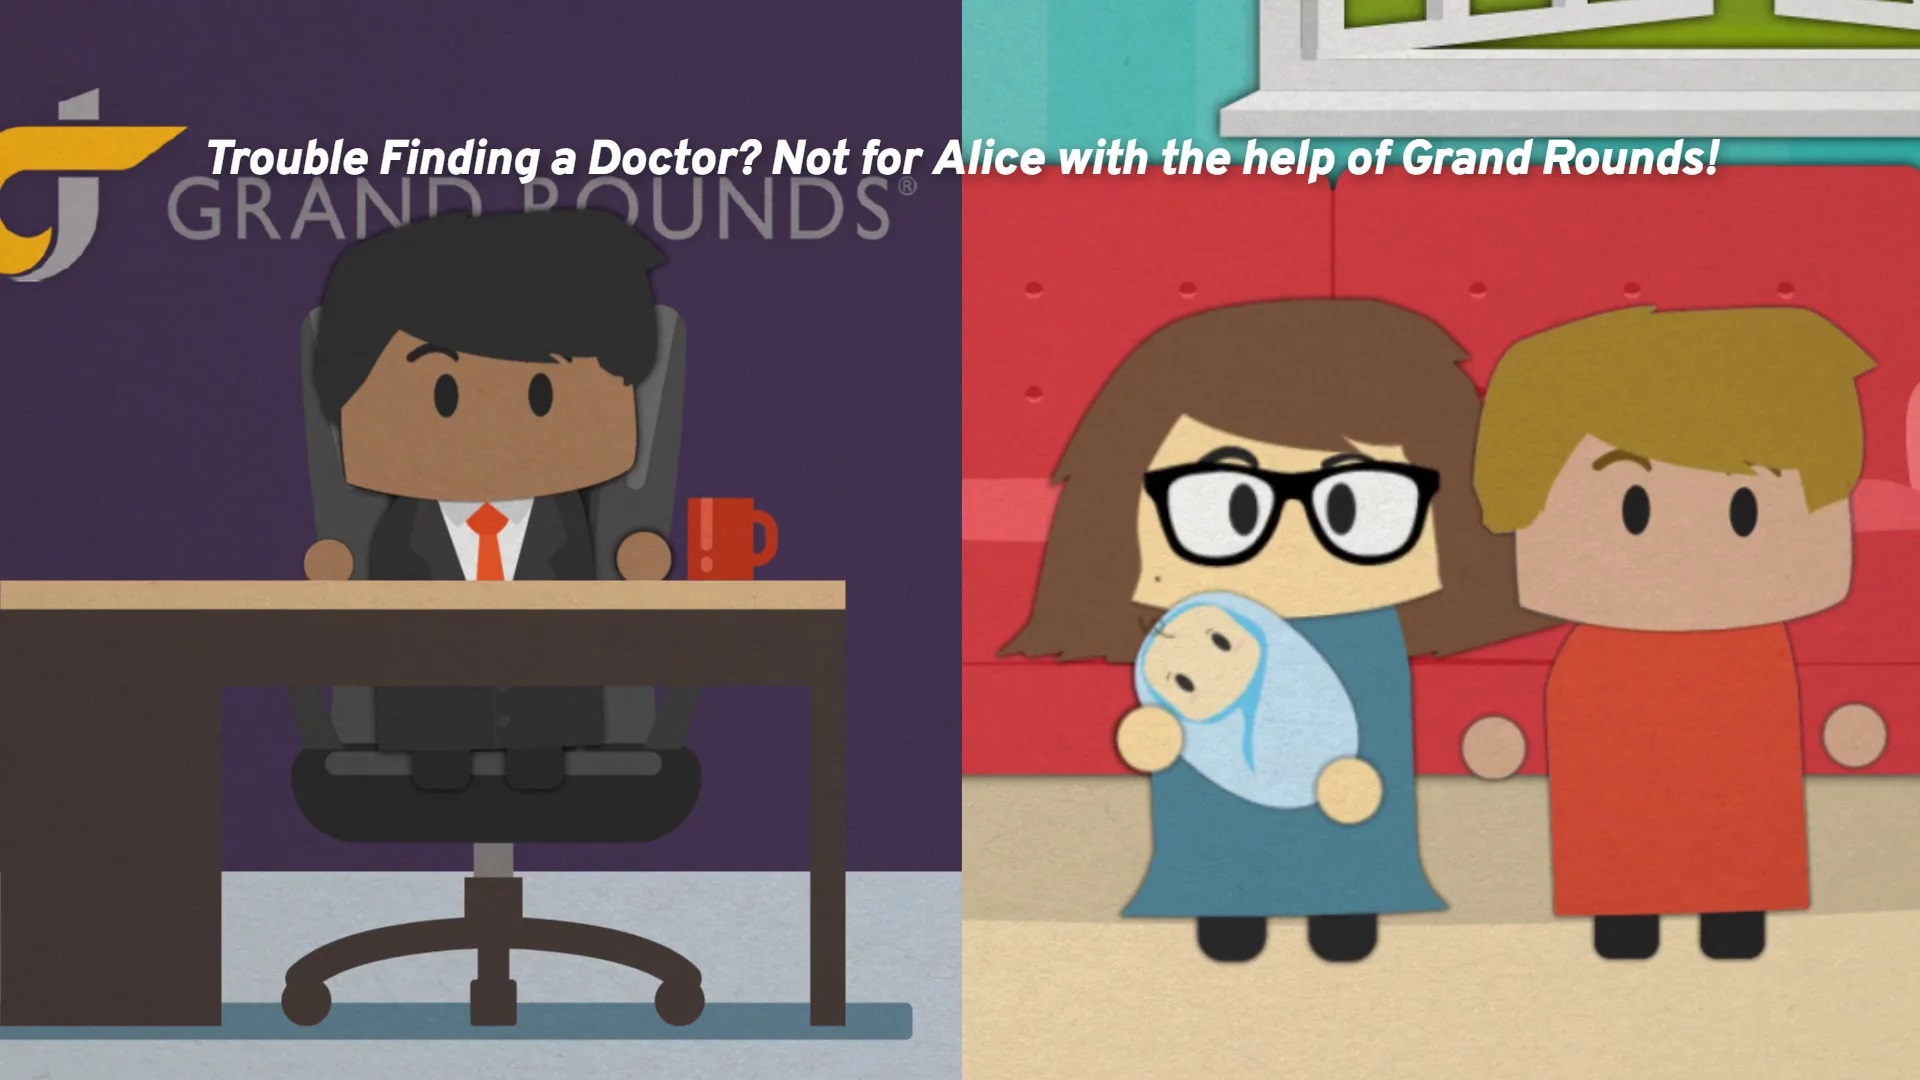 Trouble Finding a Doctor? Not for Alice with the help of Grand Rounds!